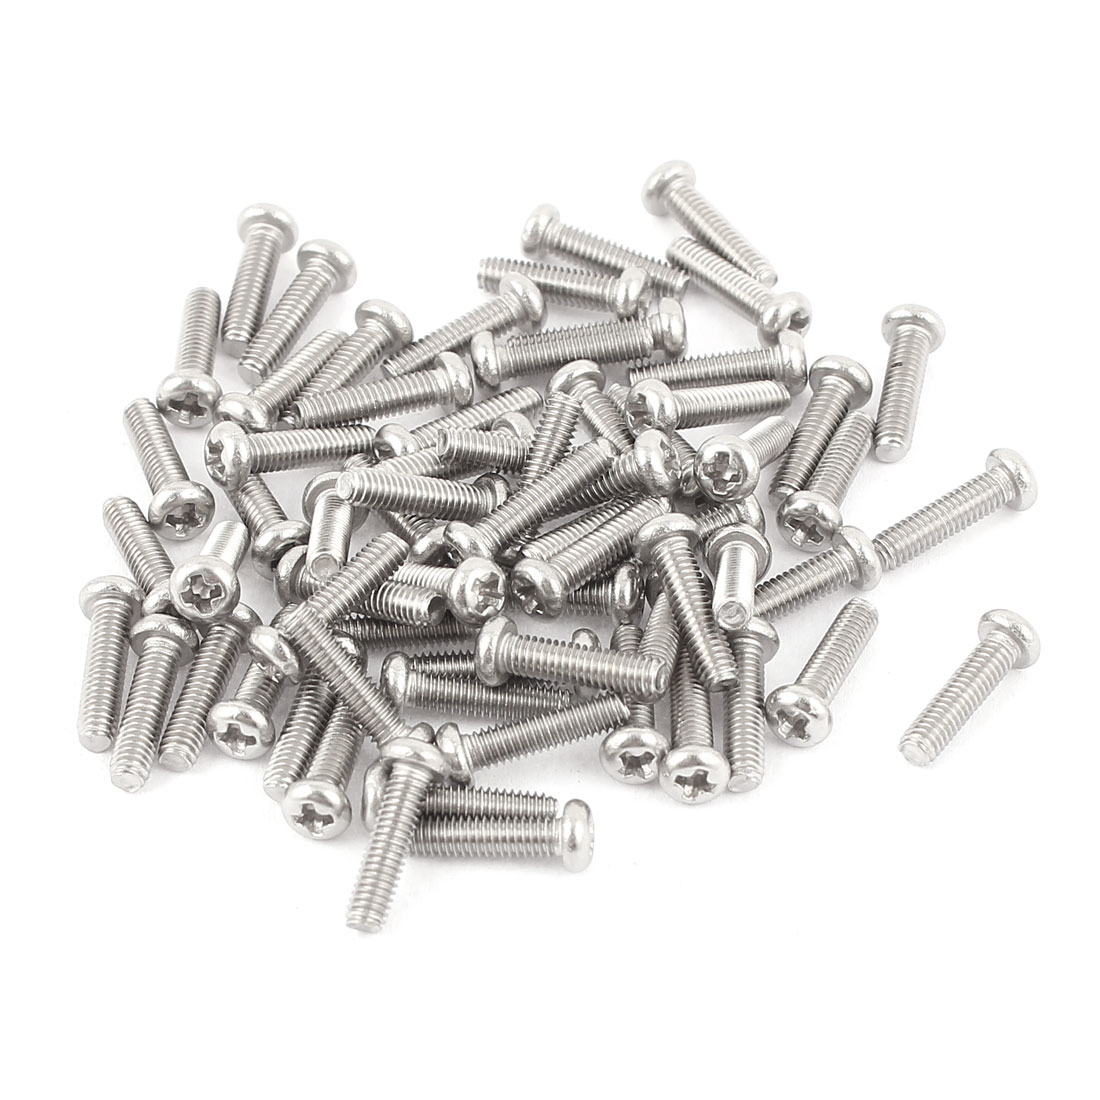 M2.5 x 10mm 304 Stainless Steel Crosshead Phillips Round Head Screws Bolt 60pcs